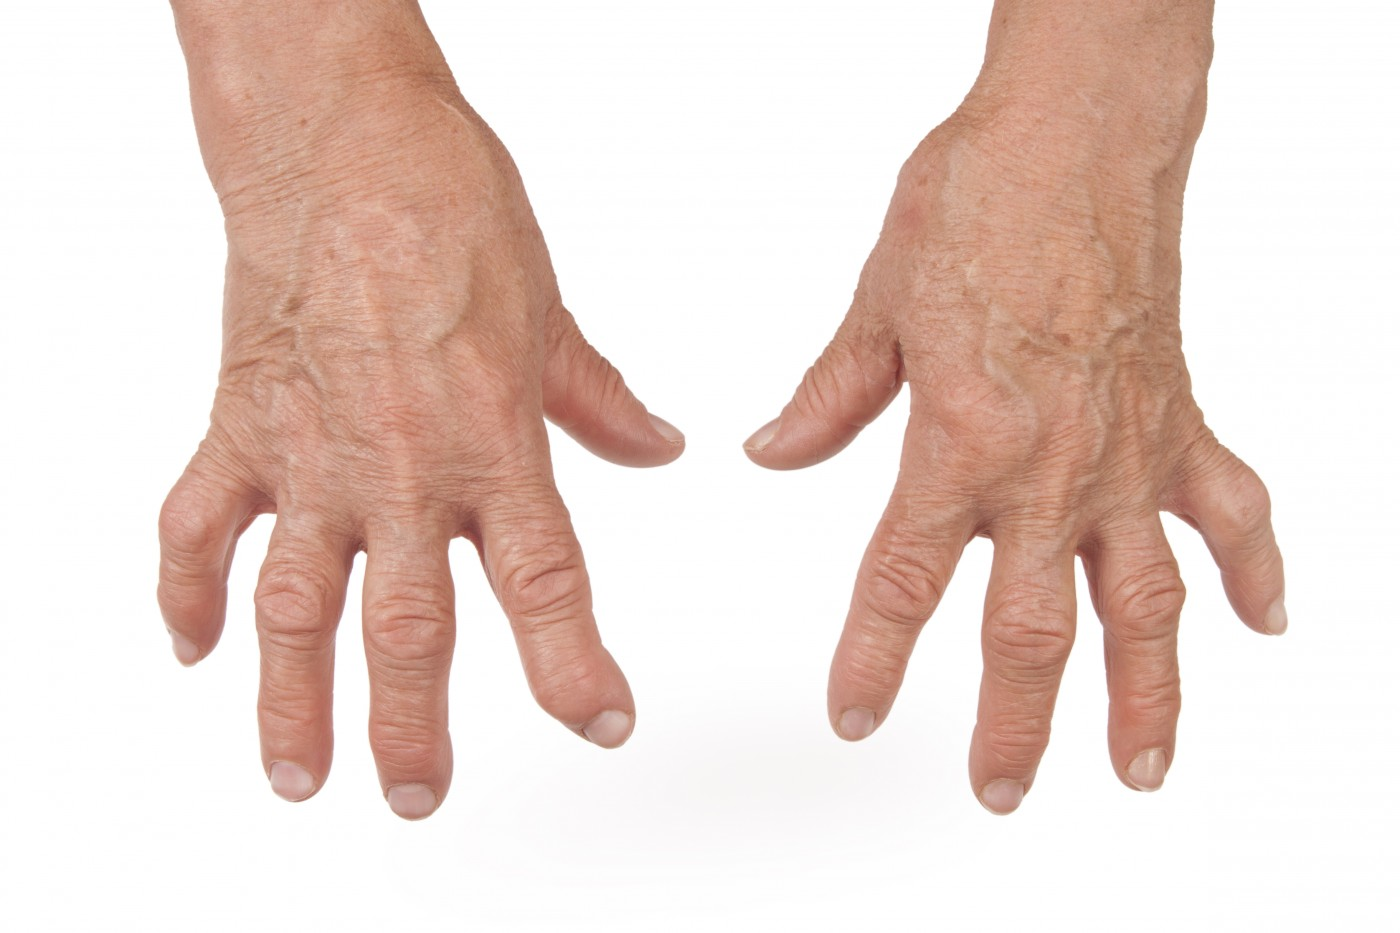 Rheumatoid Arthritis Found To Be More Severe With Co-Existent Bronchiectasis